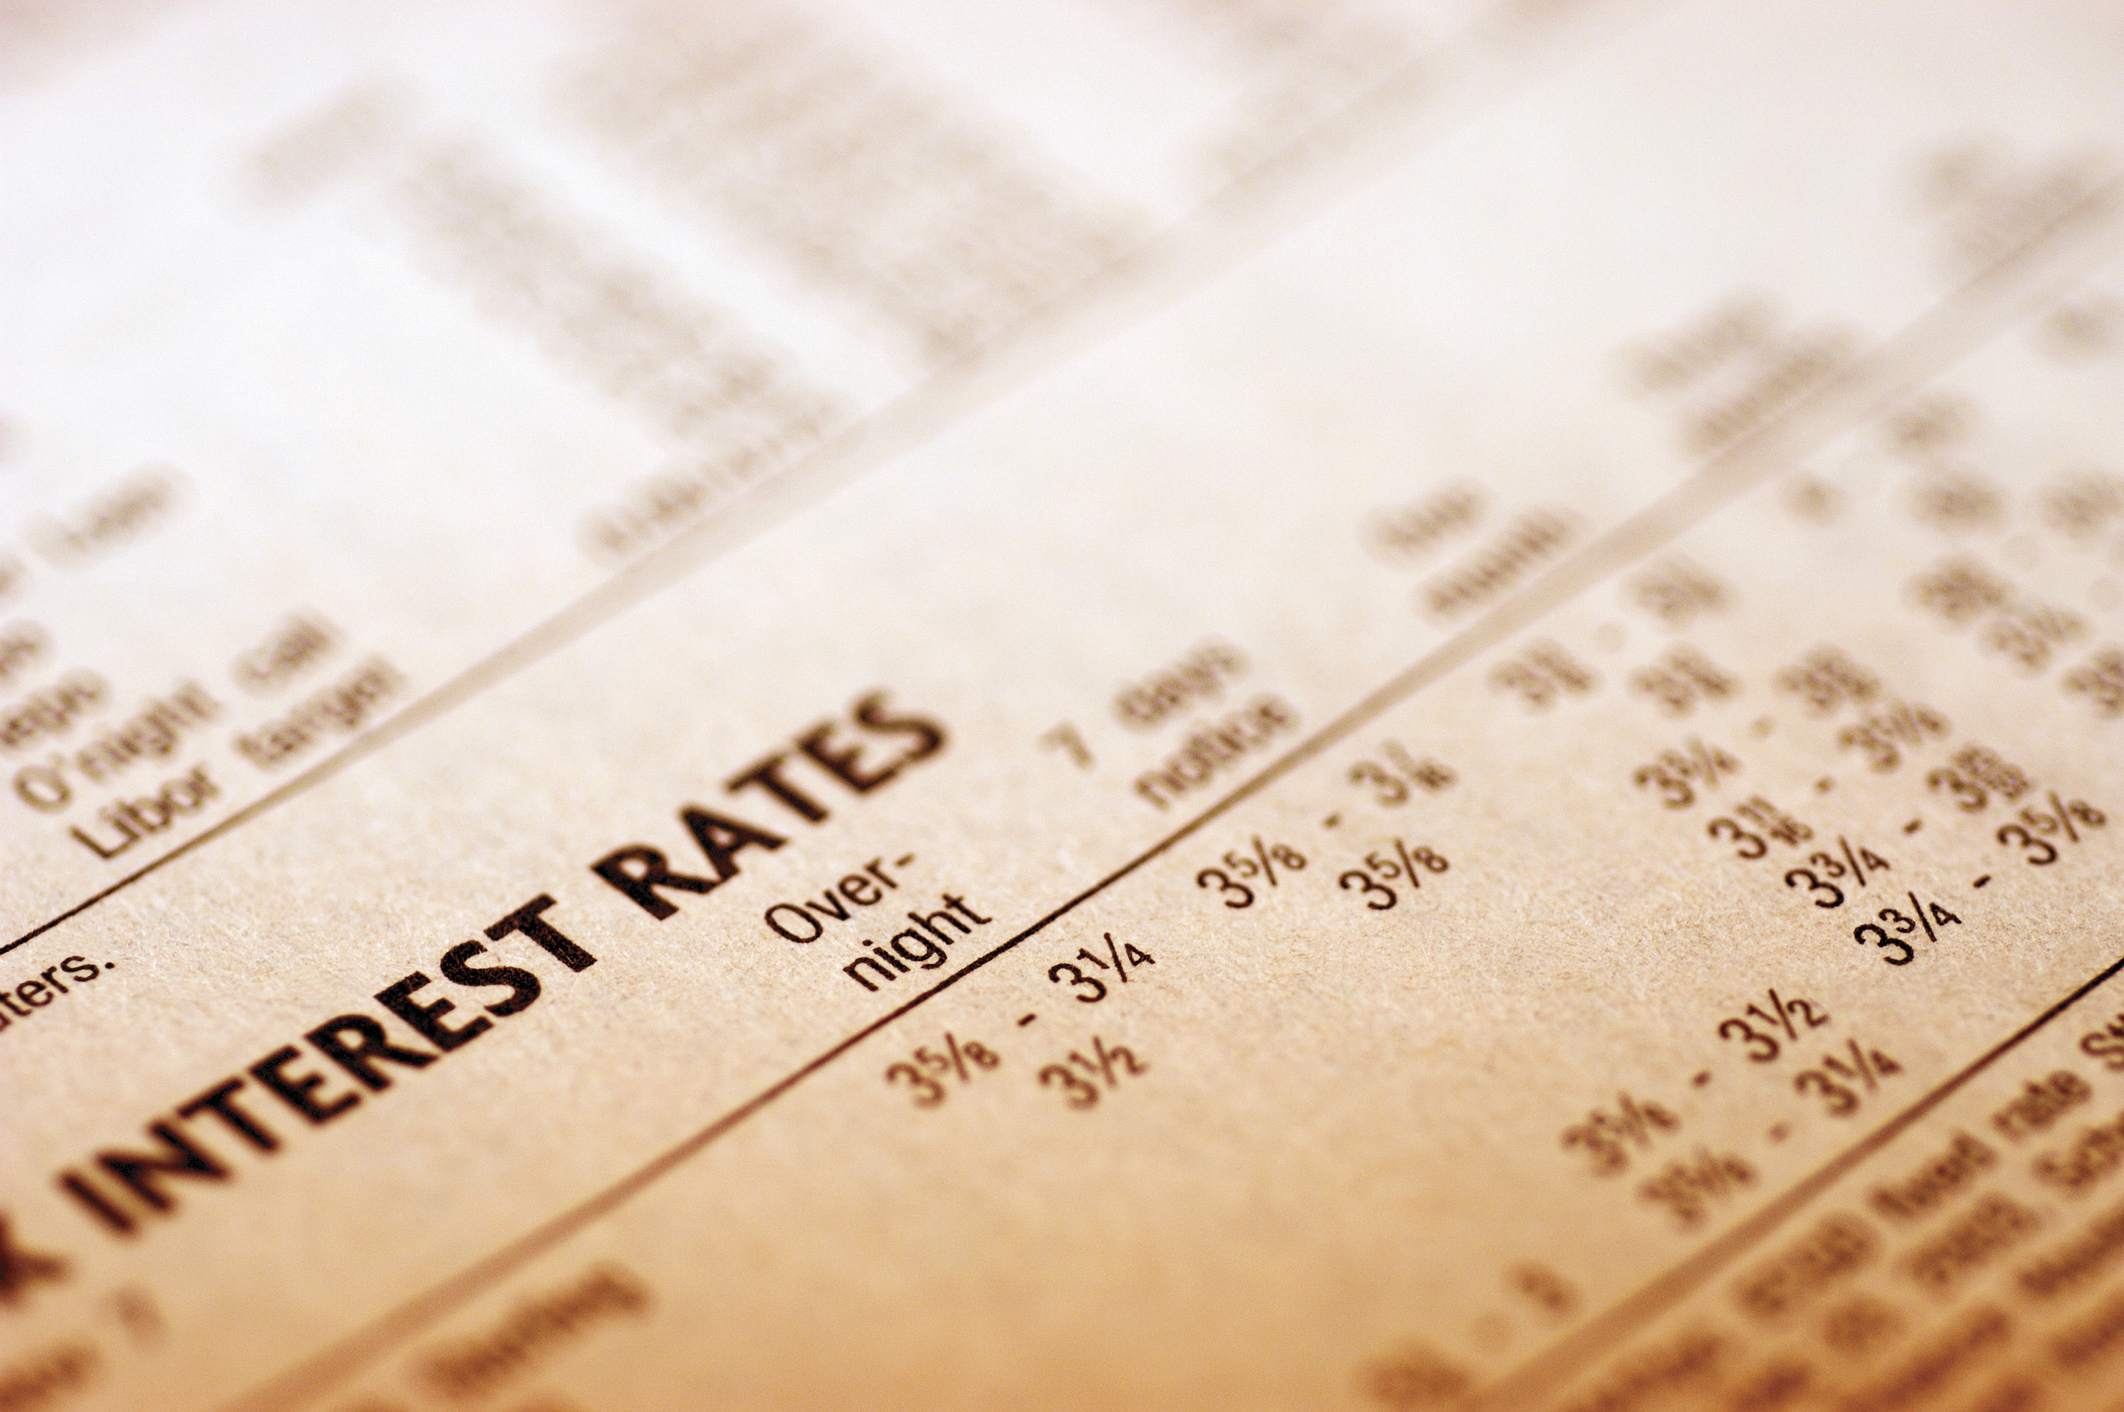 Inflation concerns not reflected in latest mortgage rate survey